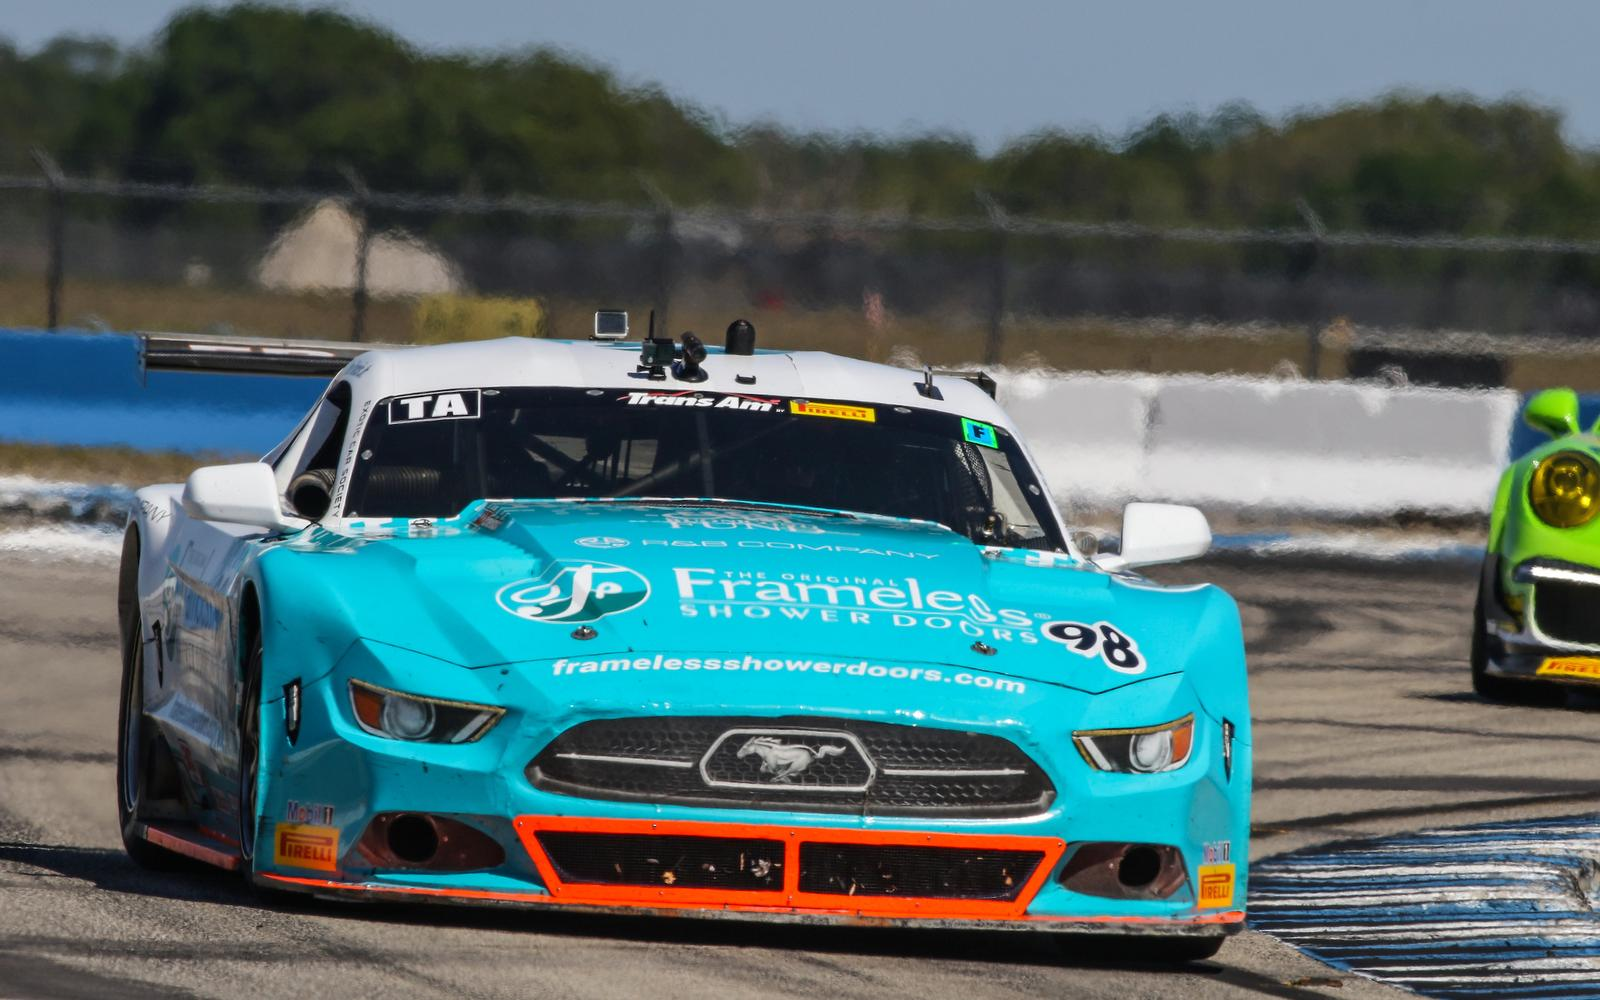 Trans Am's Southern Tour Continues at Homestead-Miami Speedway